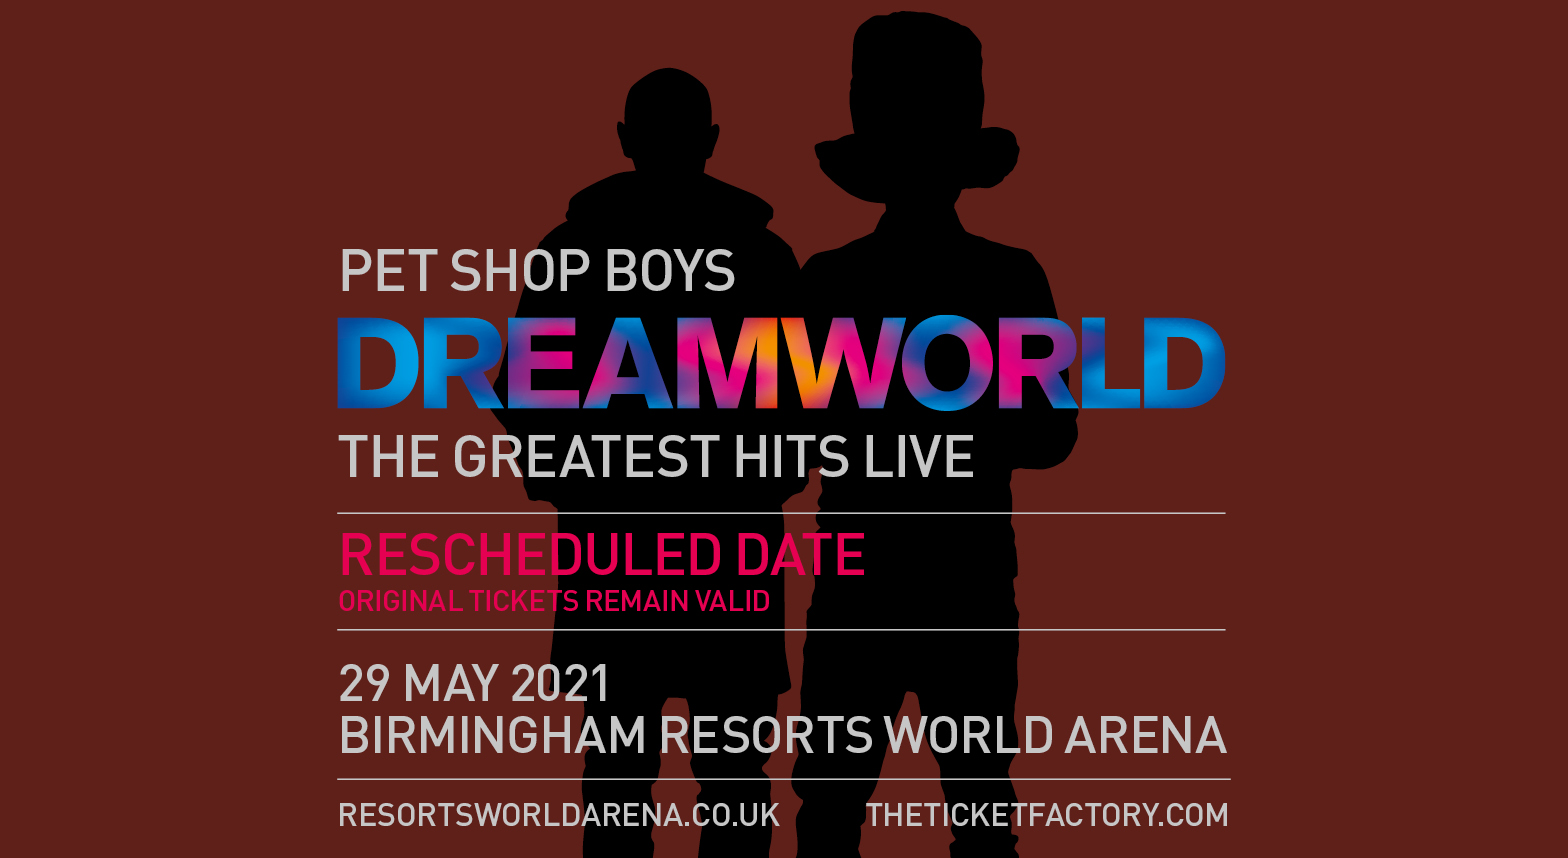 pet-shop-boys-arenas-rescheduled.jpg